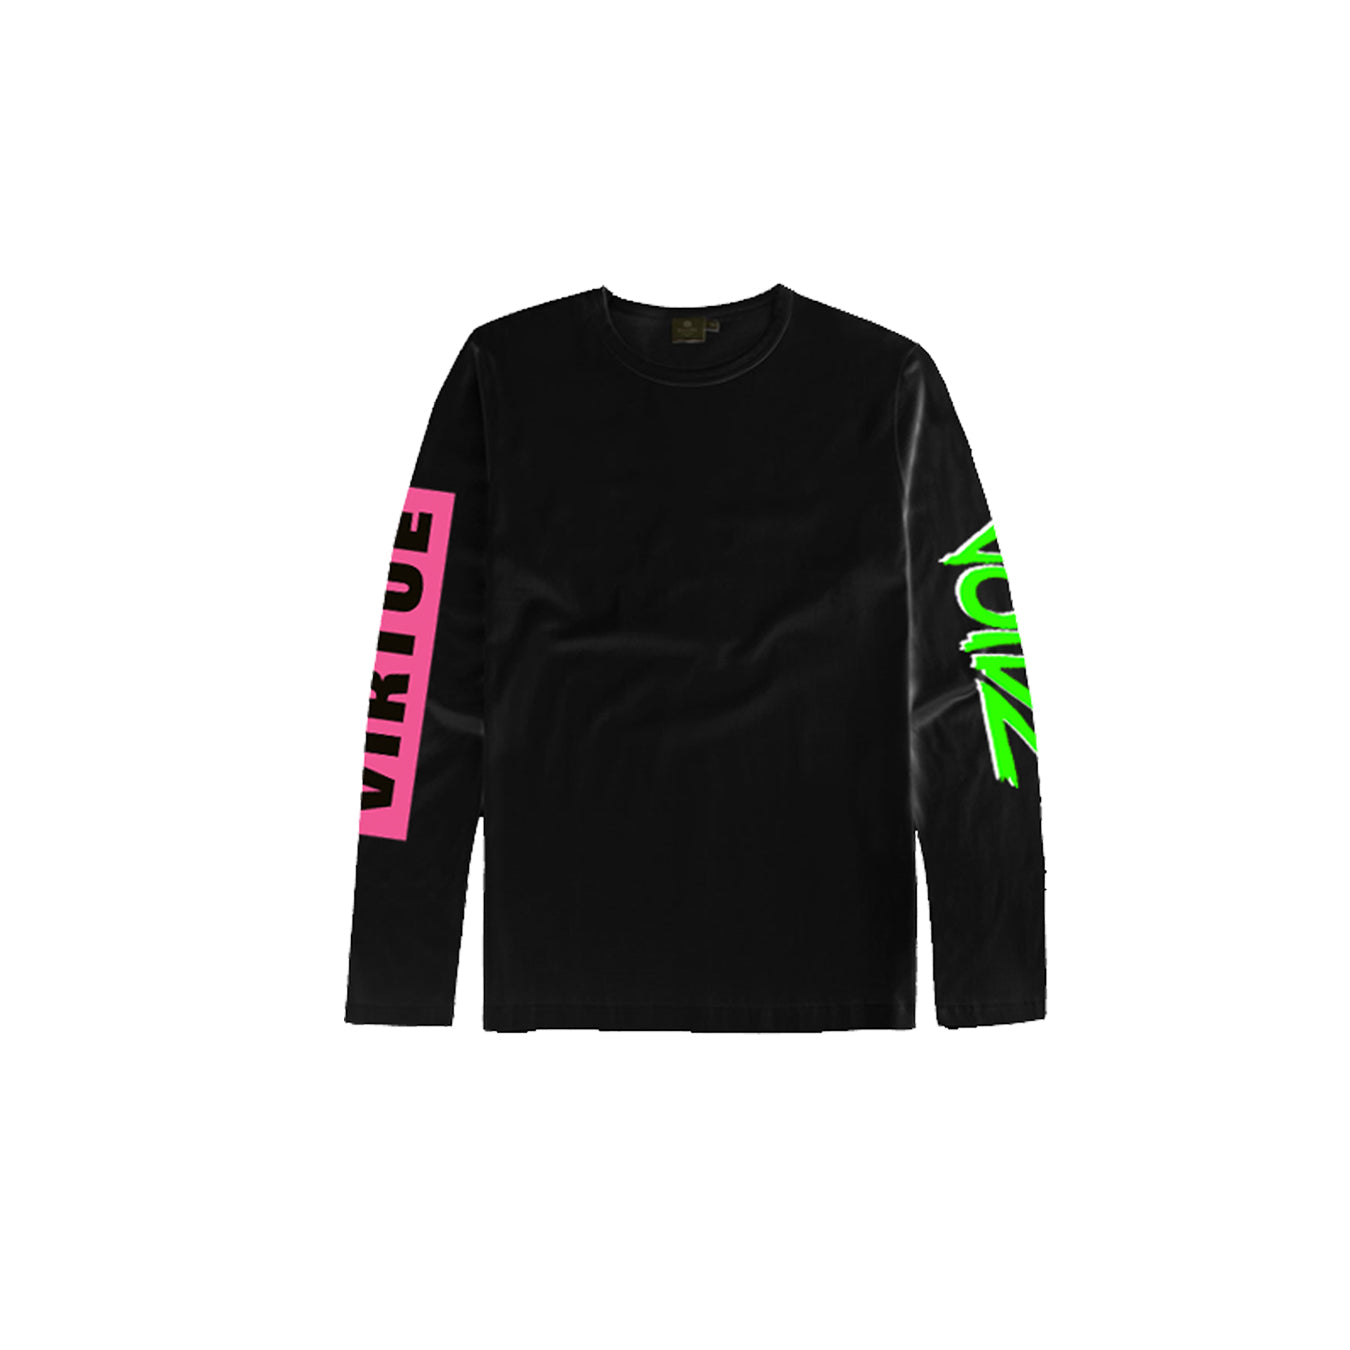 The Voidz Neon Pink Green Long Sleeve